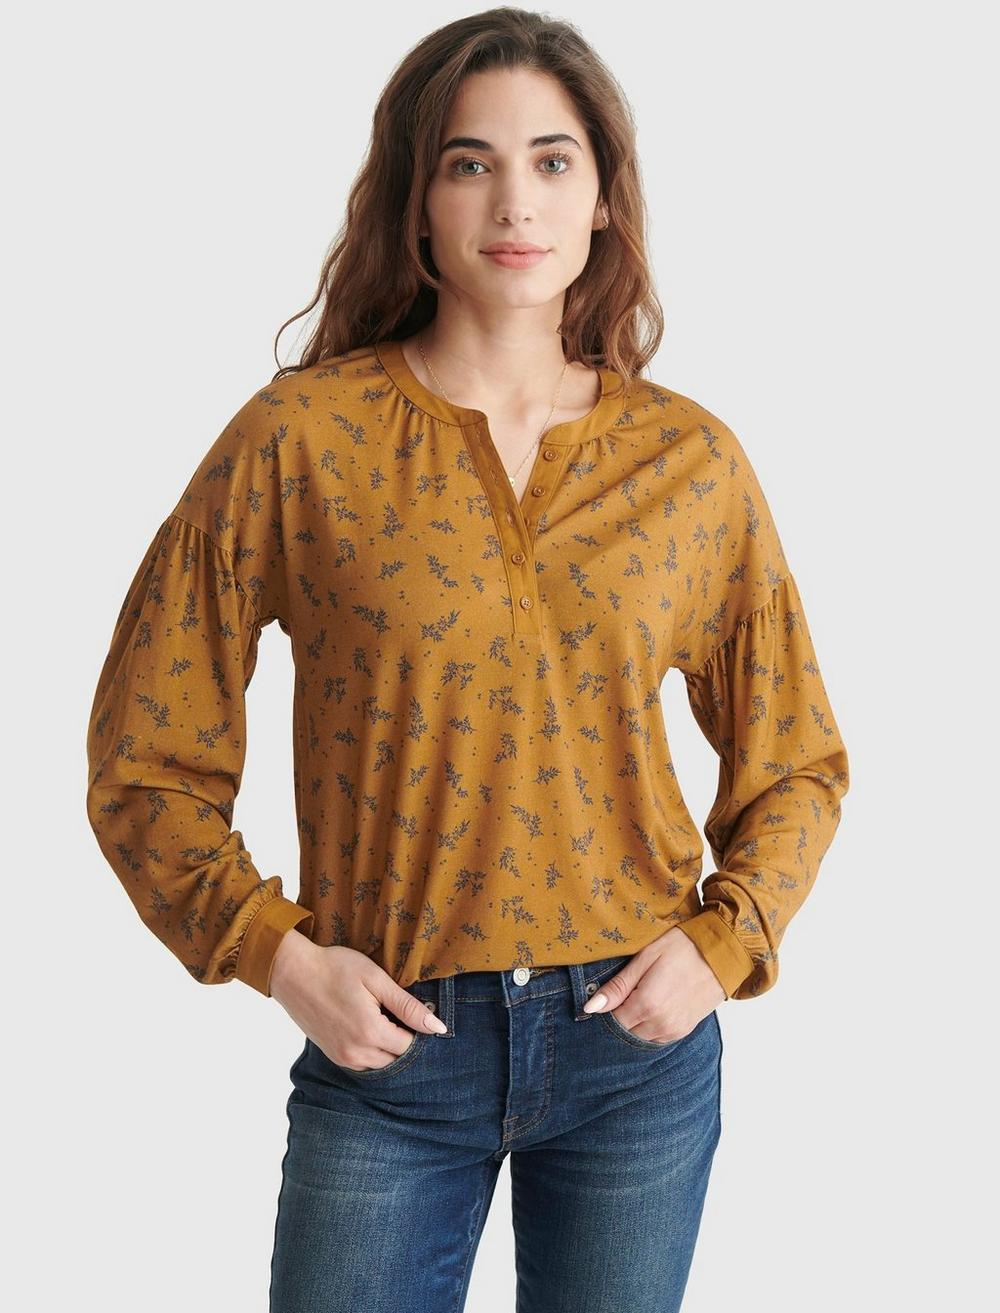 BUTTON-ACCENTED V-NECK TOP, image 1